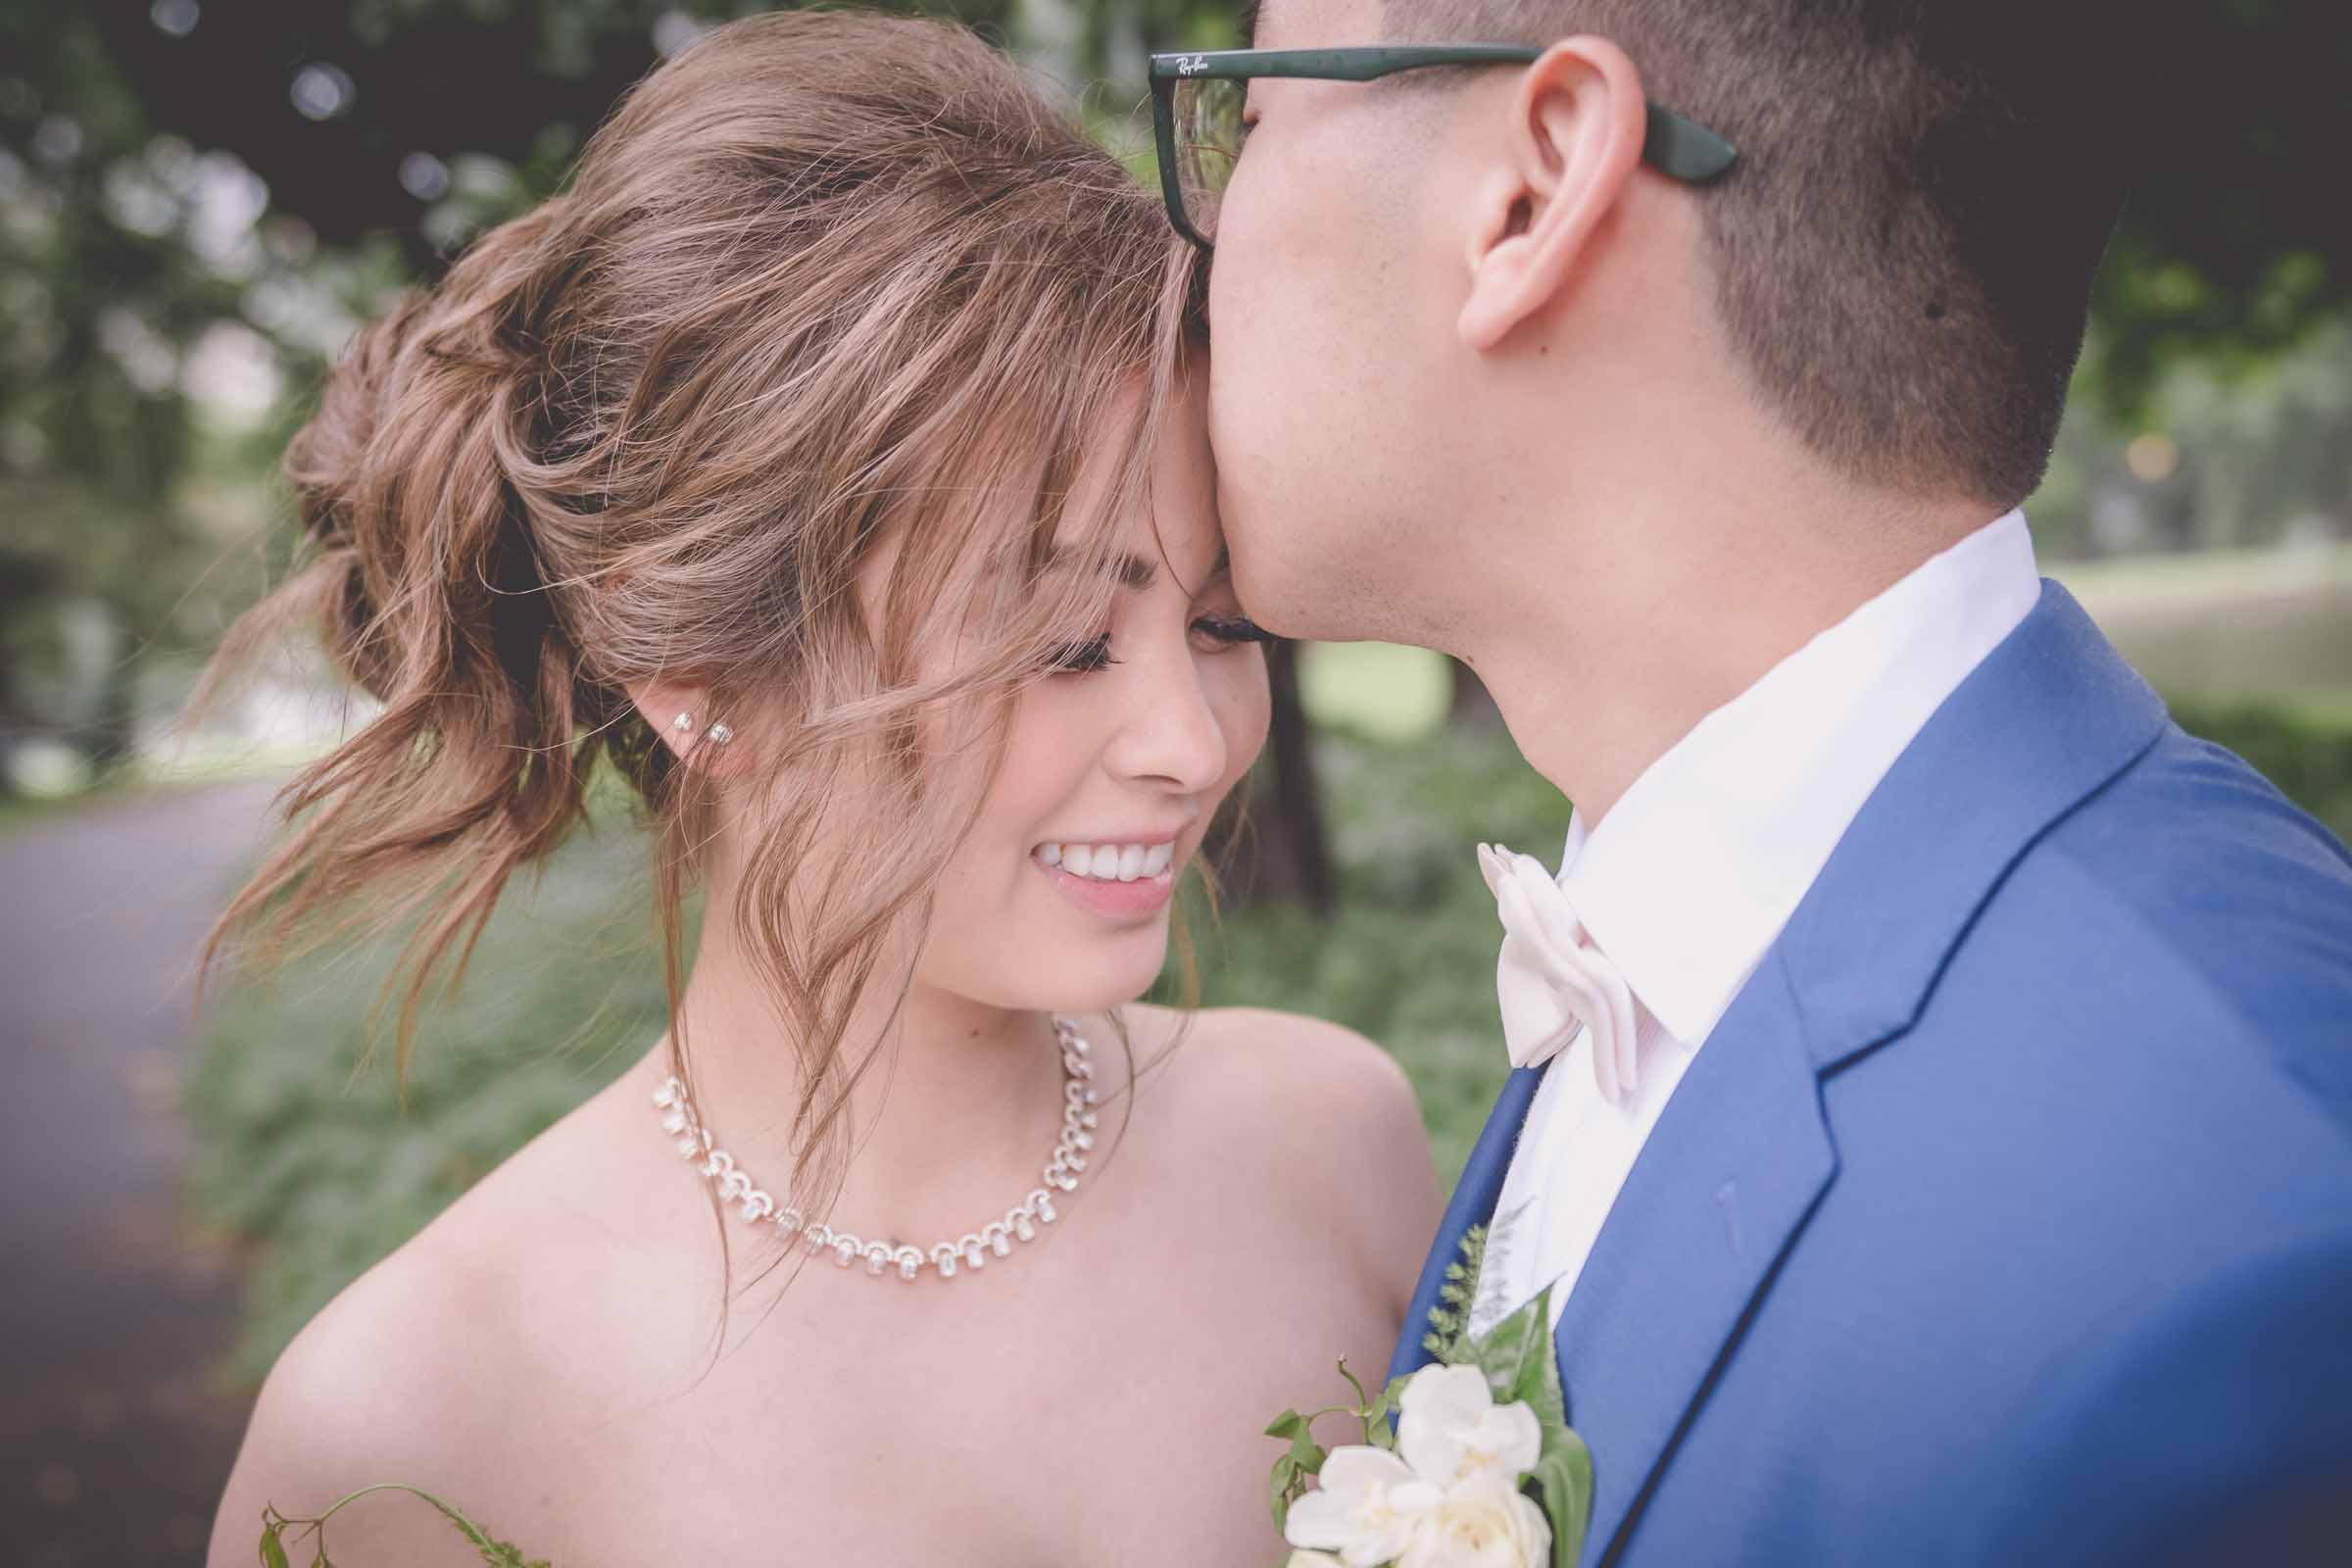 Lina & Will - Lovely Wedding Photography in the Rain • Pause The Moment